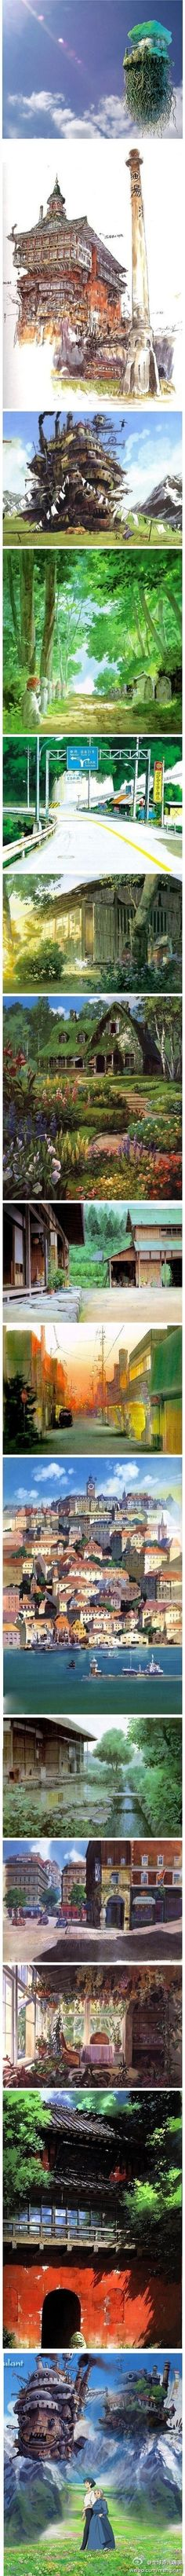 Background layout art in Hayao Miyazaki films.